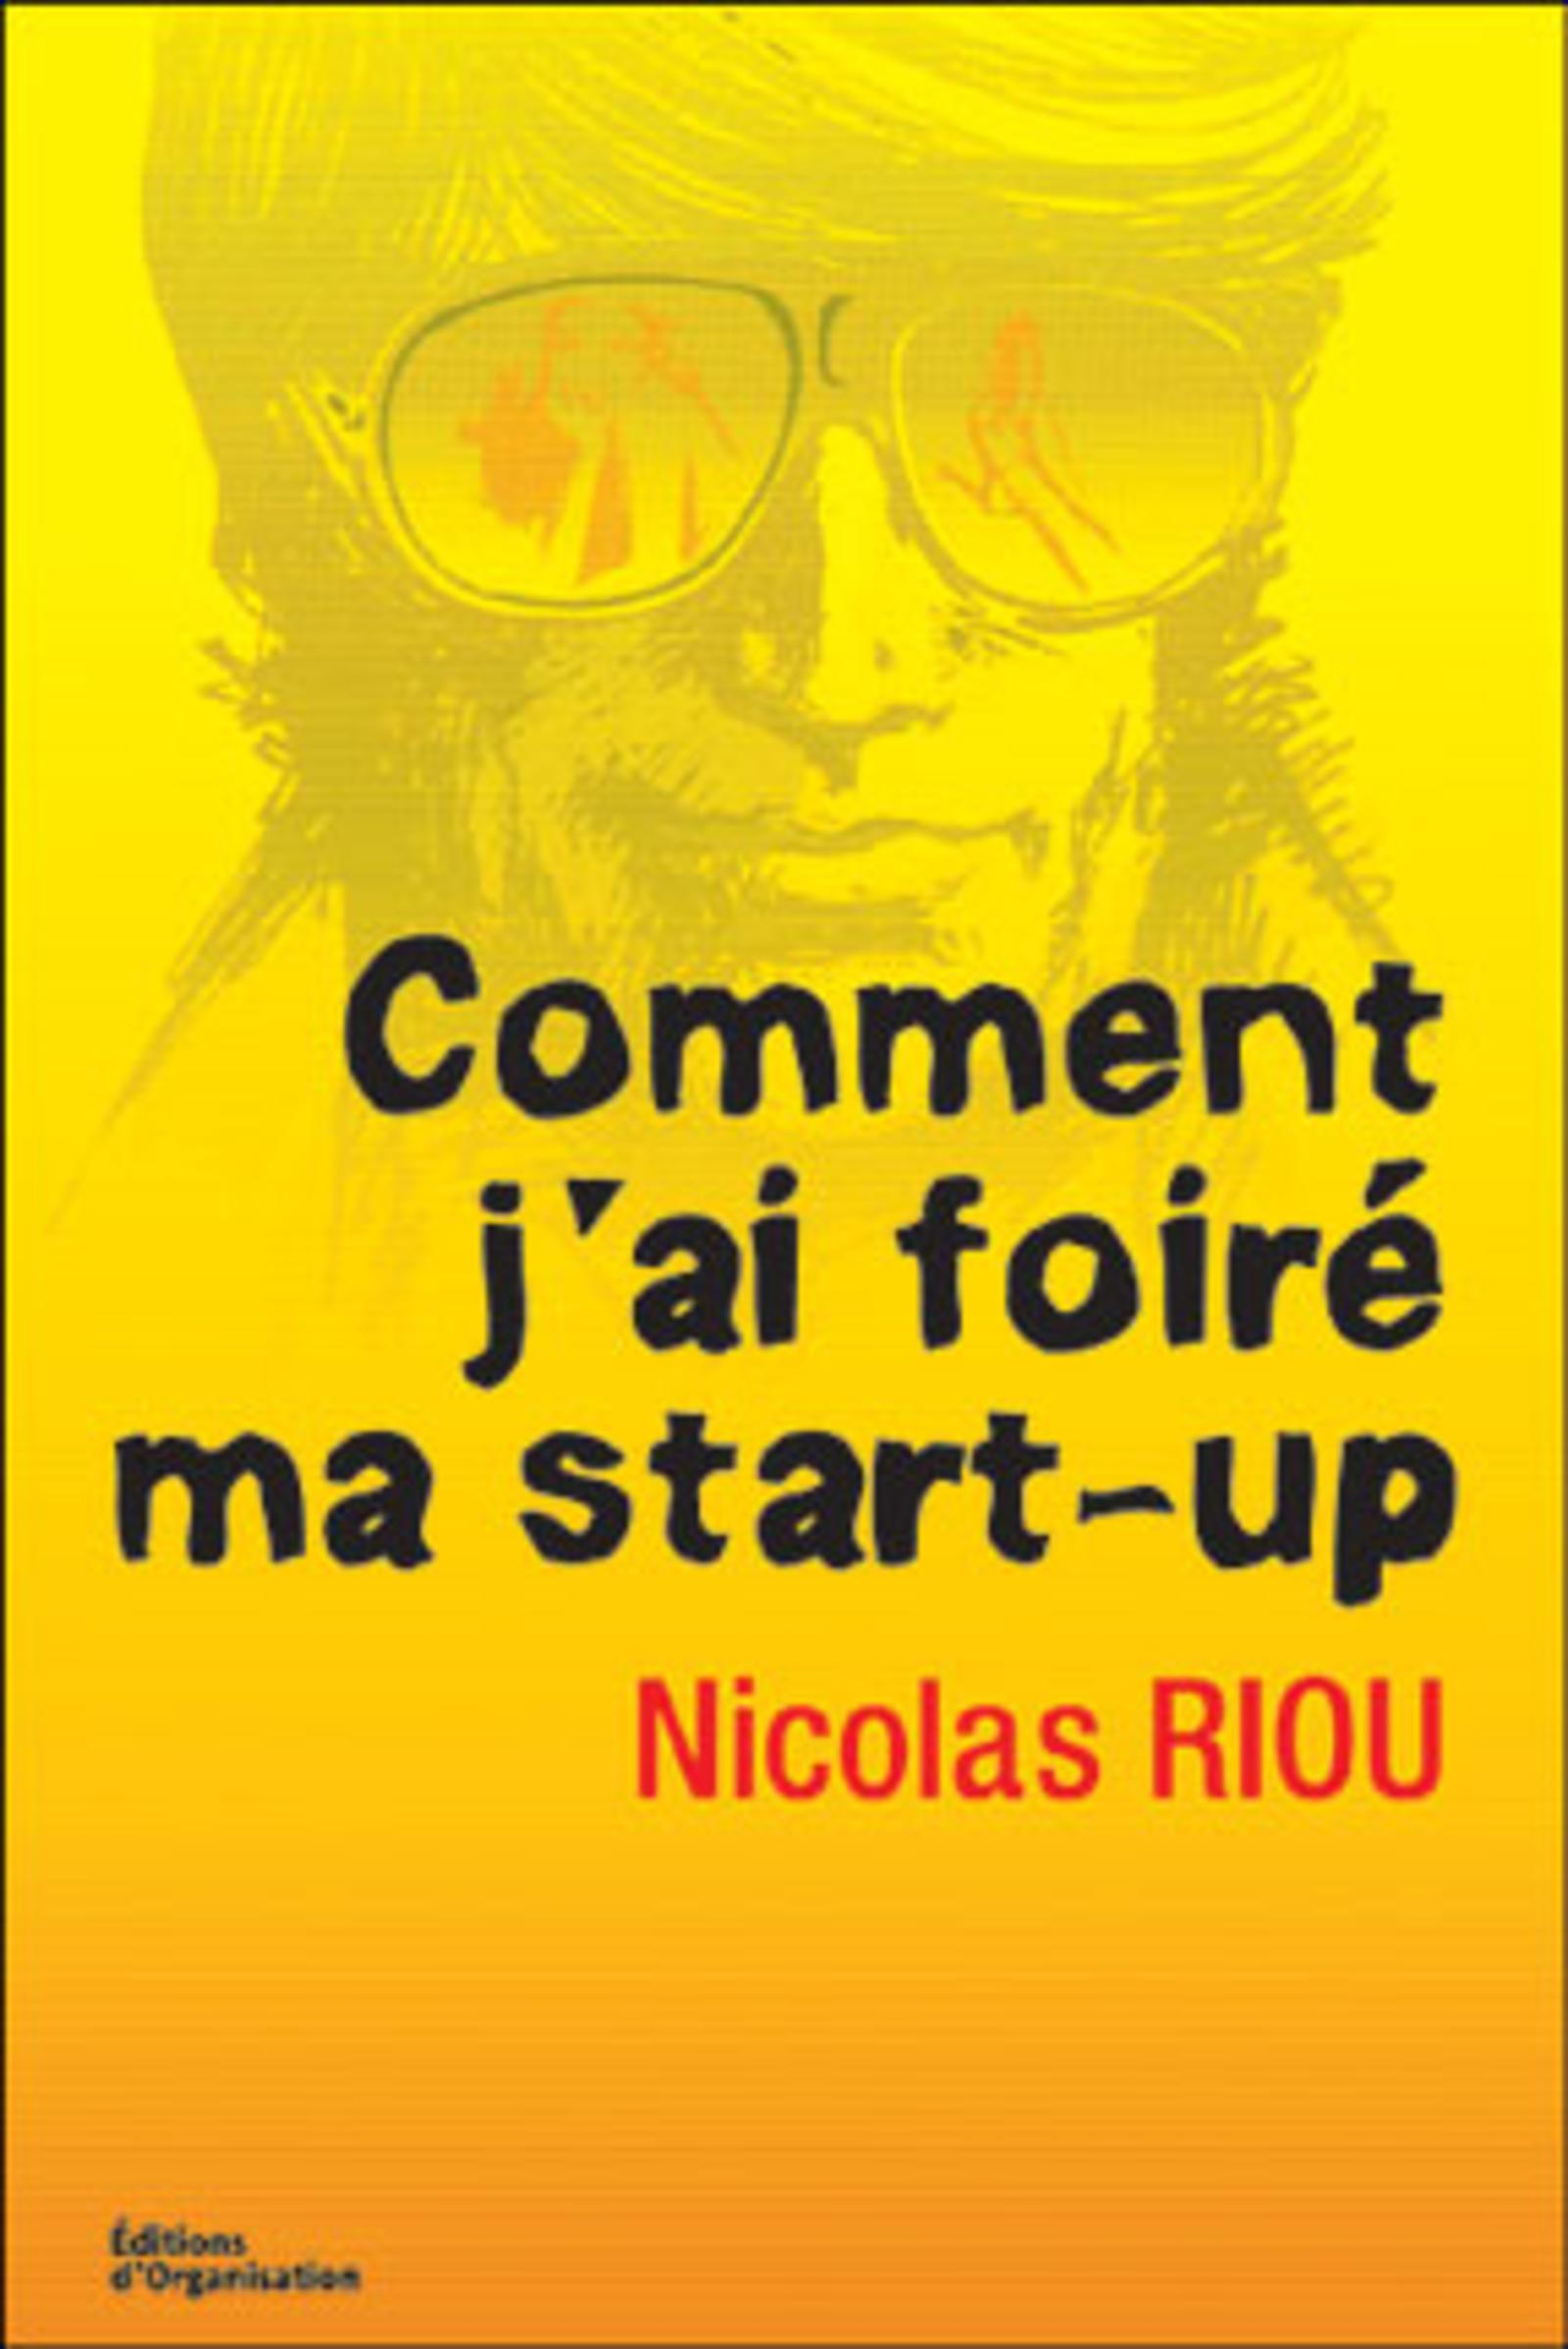 COMMENT J'AI FOIRE MA START-UP